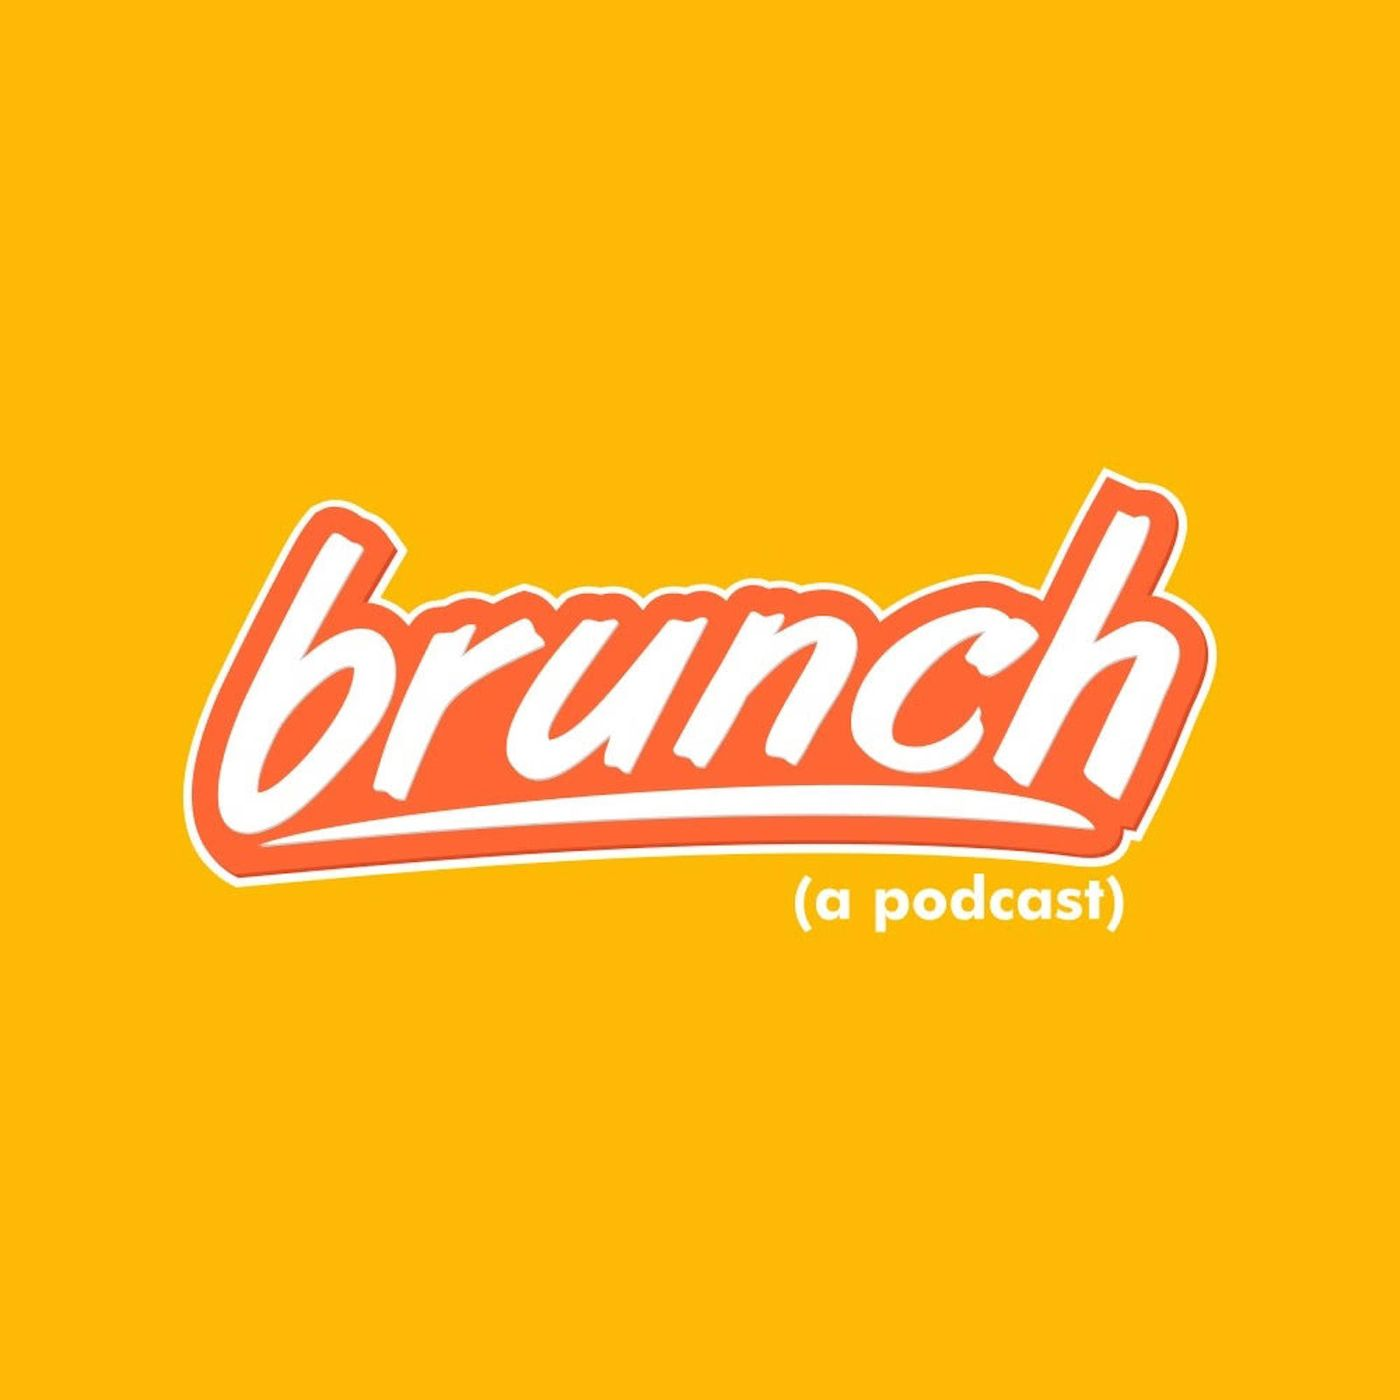 brunch (a podcast)